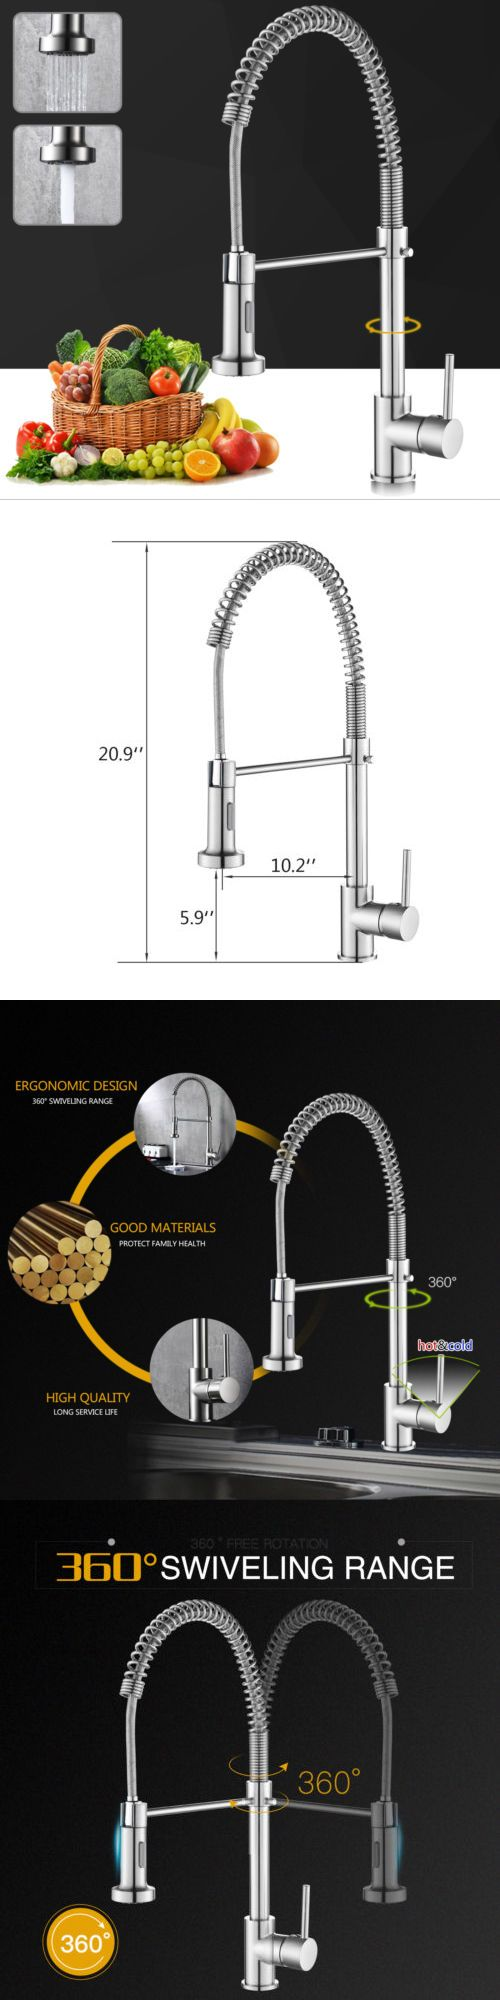 Brushed Nickel Kitchen Faucet Swivel Pull Out Sprayer Single Hole ...